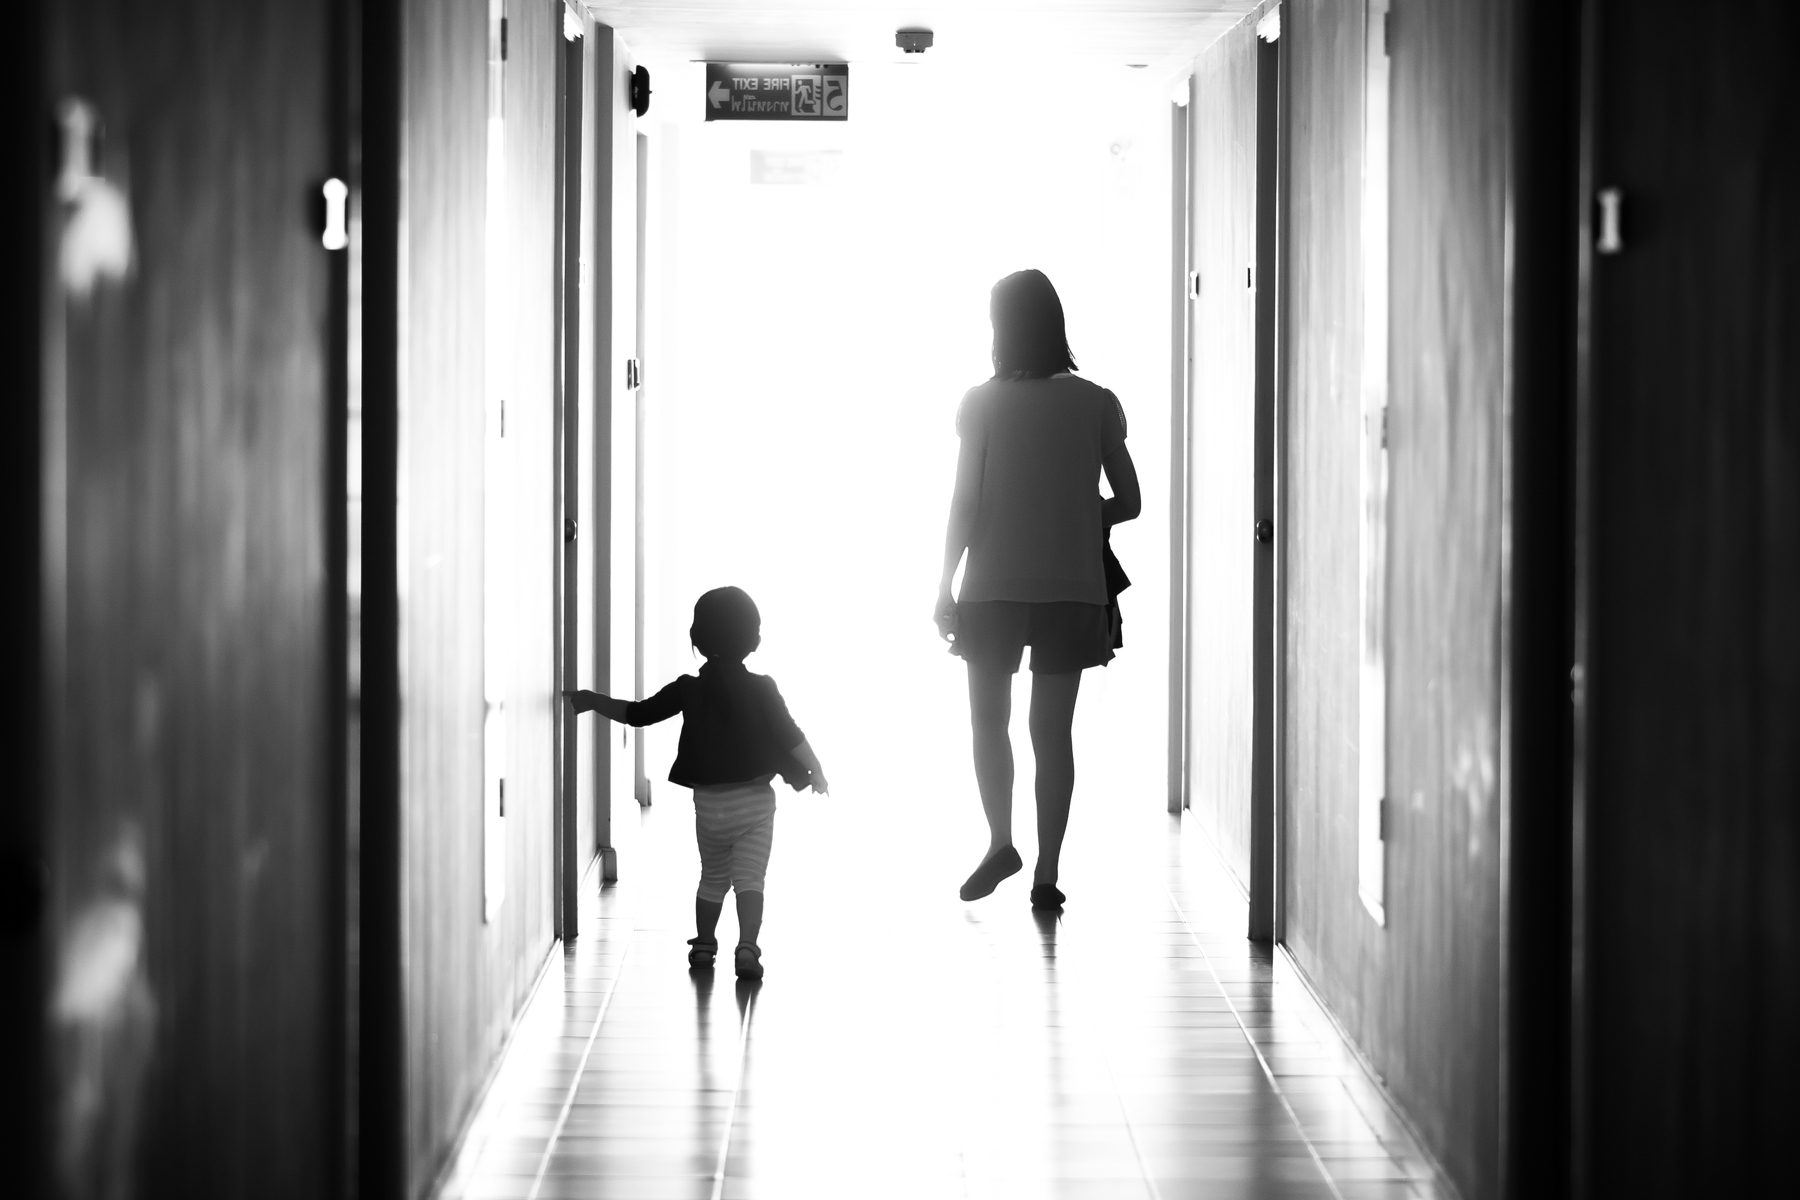 Mother and child walking down hallway